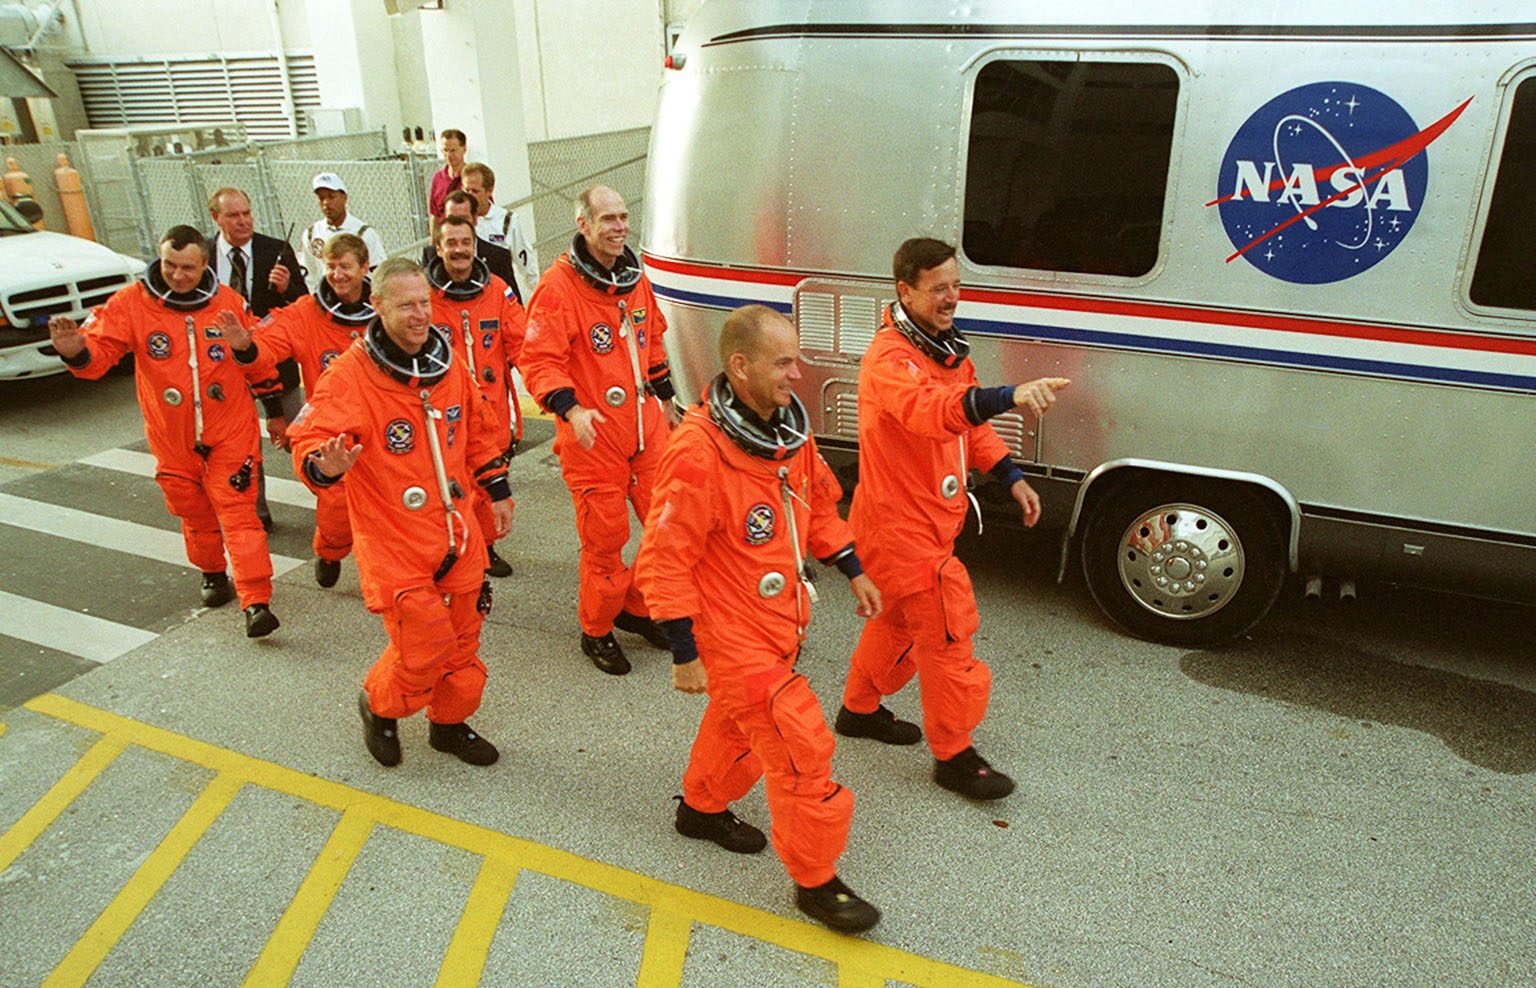 KENNEDY SPACE CENTER, Fla. -- The STS-105 and Expedition Three crews wave to onlookers as they head for the Astrovan to take them to Launch Pad 39A and a simulated launch countdown. From left to right are cosmonaut Vladimir Nikolaevich Dezhurov, Commander Frank Culbertson and cosmonaut Mikhail Tyurin. Ahead of them are Mission Specialists Patrick Forrester and Dan Barry, Pilot Rick Sturckow and Commander Scott Horowitz. Both crews are at Kennedy Space Center participating in a Terminal Countdown Demonstration Test, a dress rehearsal for launch. The activities also include emergency egress training and familiarization with the payload. Mission STS-105 will be transporting the Expedition Three crew, several payloads and scientific experiments to the International Space Station aboard Space Shuttle Discovery. The Expedition Two crew members currently on the Station will return to Earth on Discovery. The mission is scheduled to launch no earlier than Aug. 9, 2001